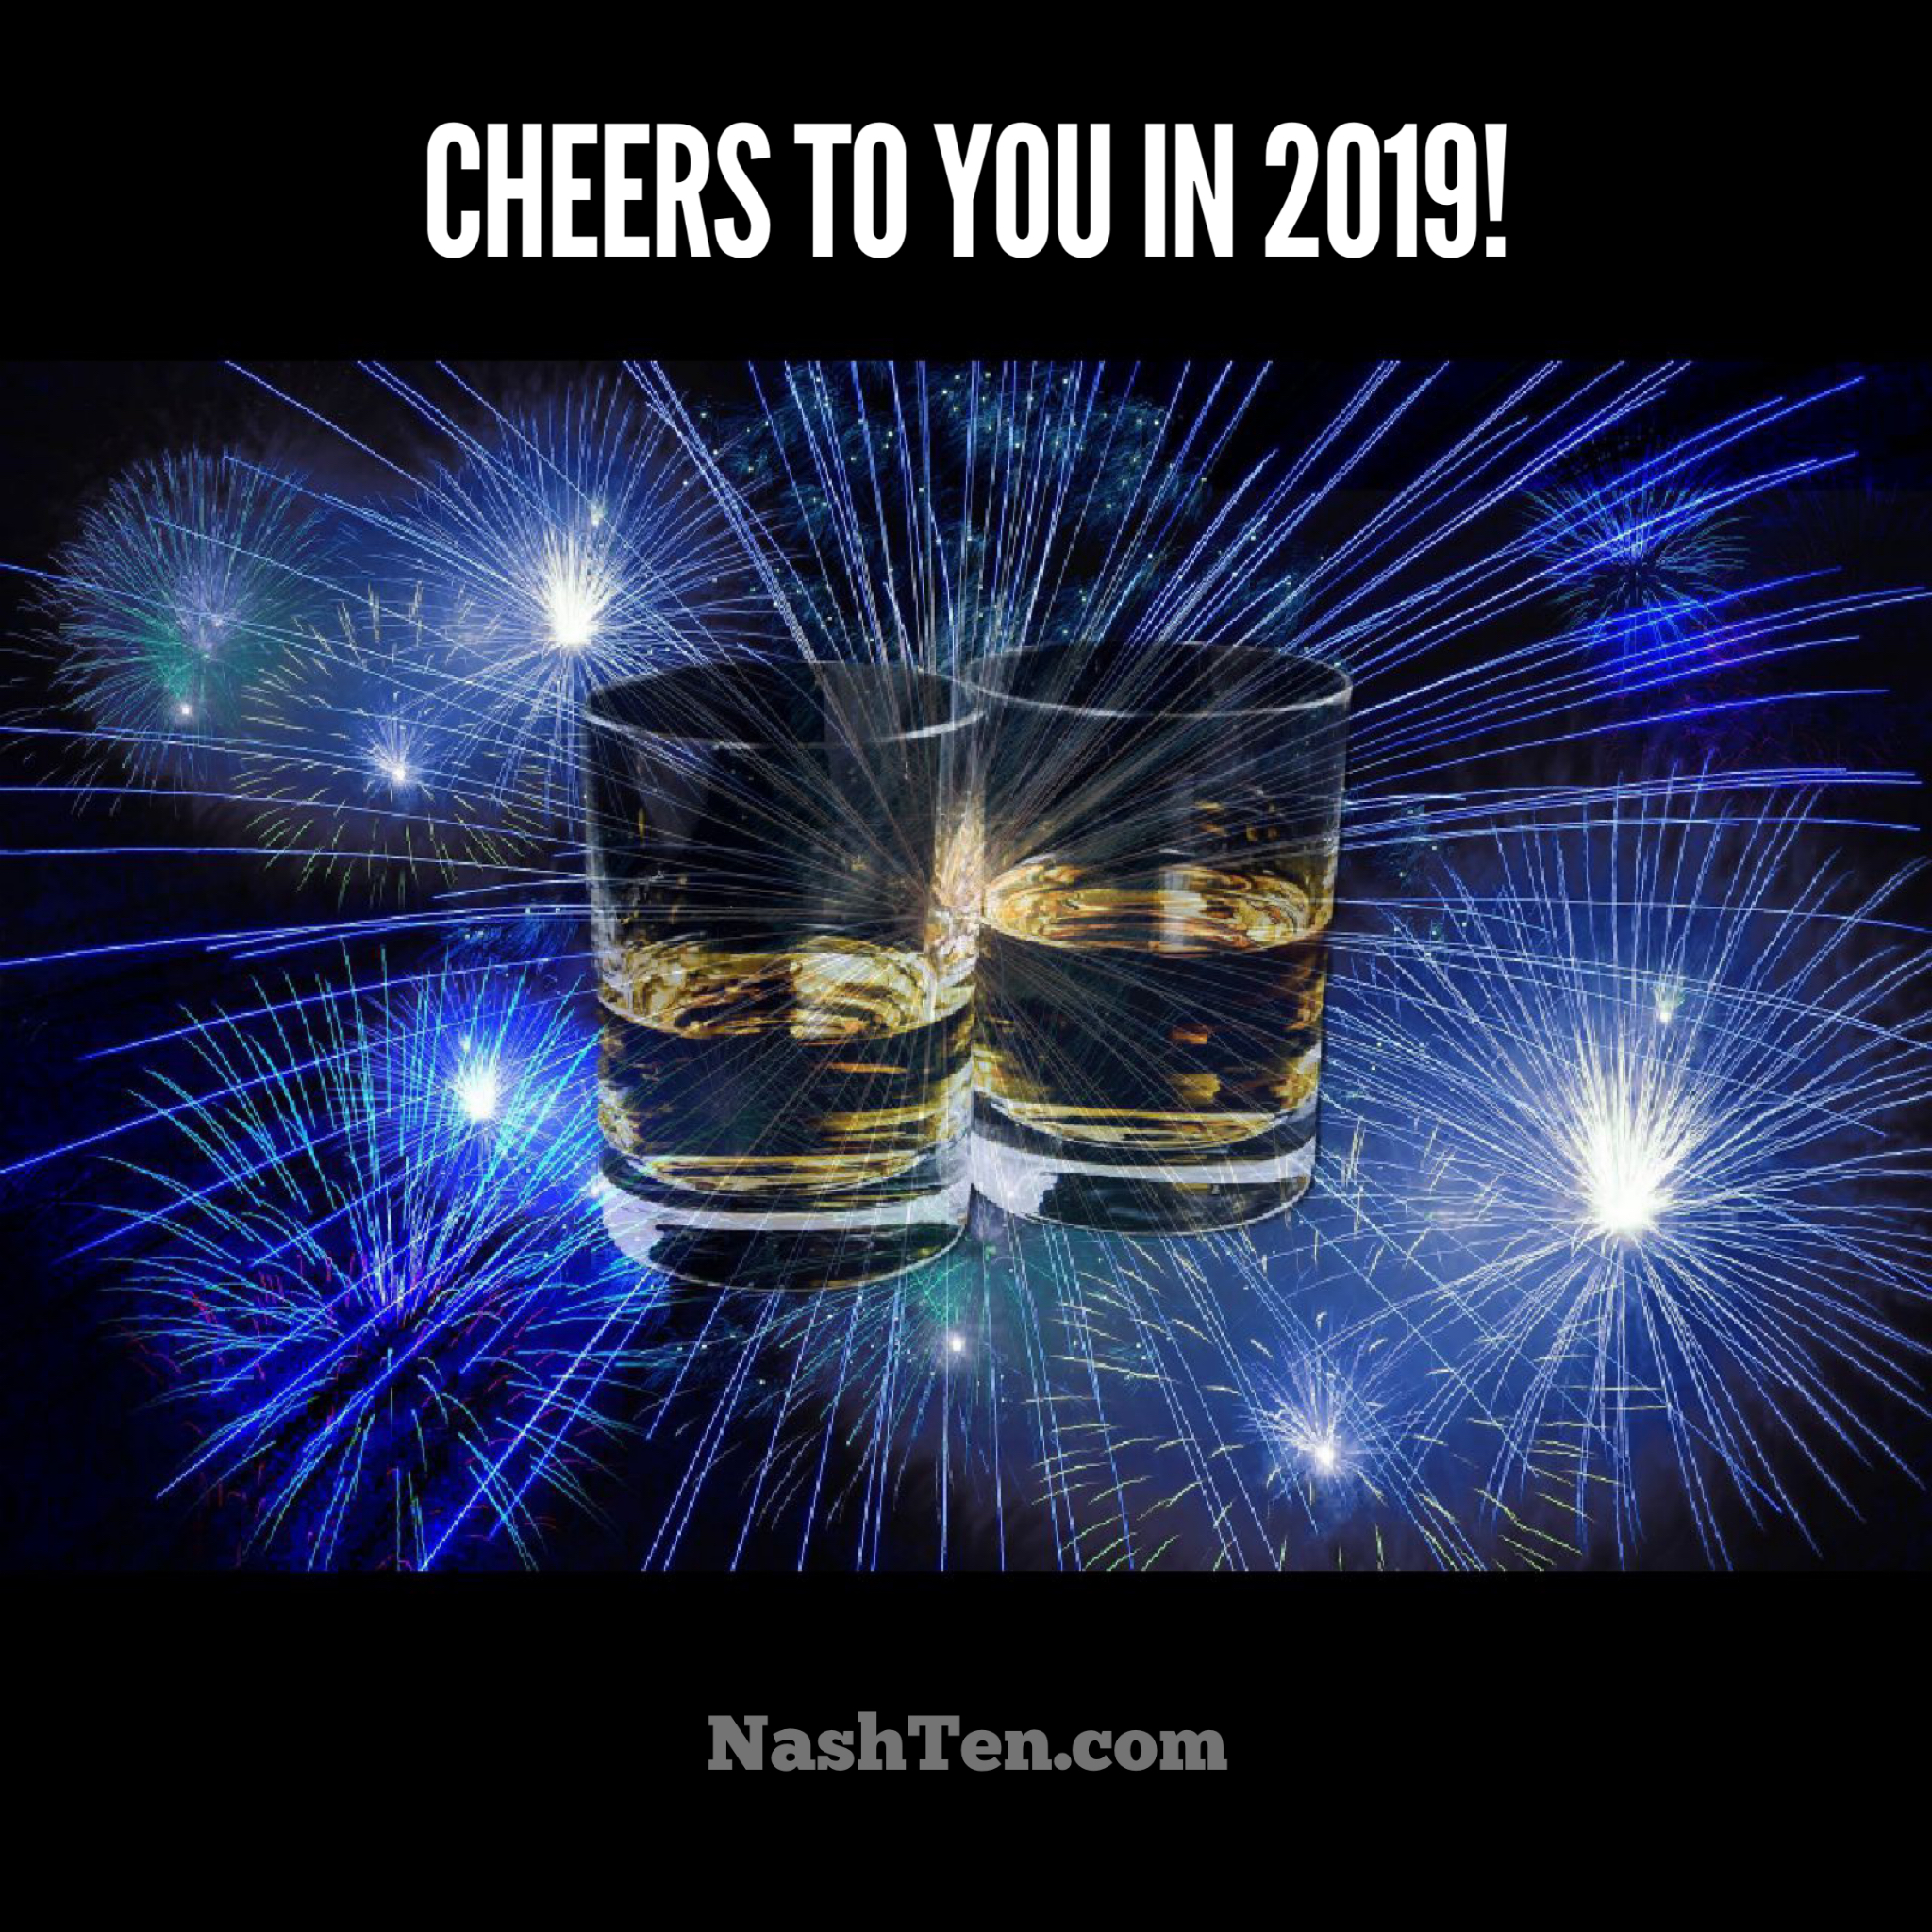 Cheers to you in 2019